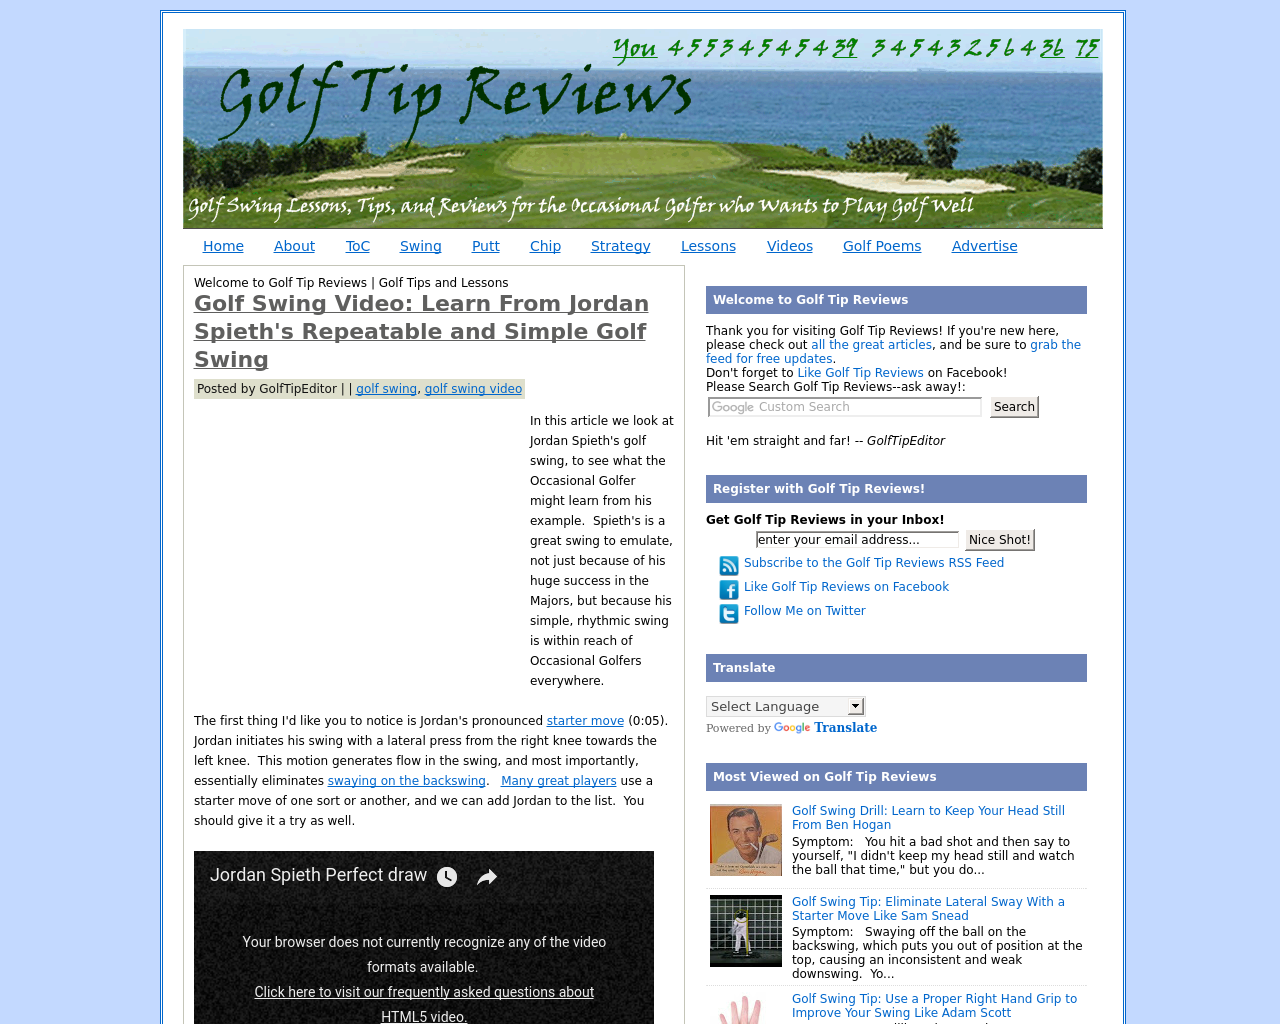 Golf-Trip-Reviews-Advertising-Reviews-Pricing